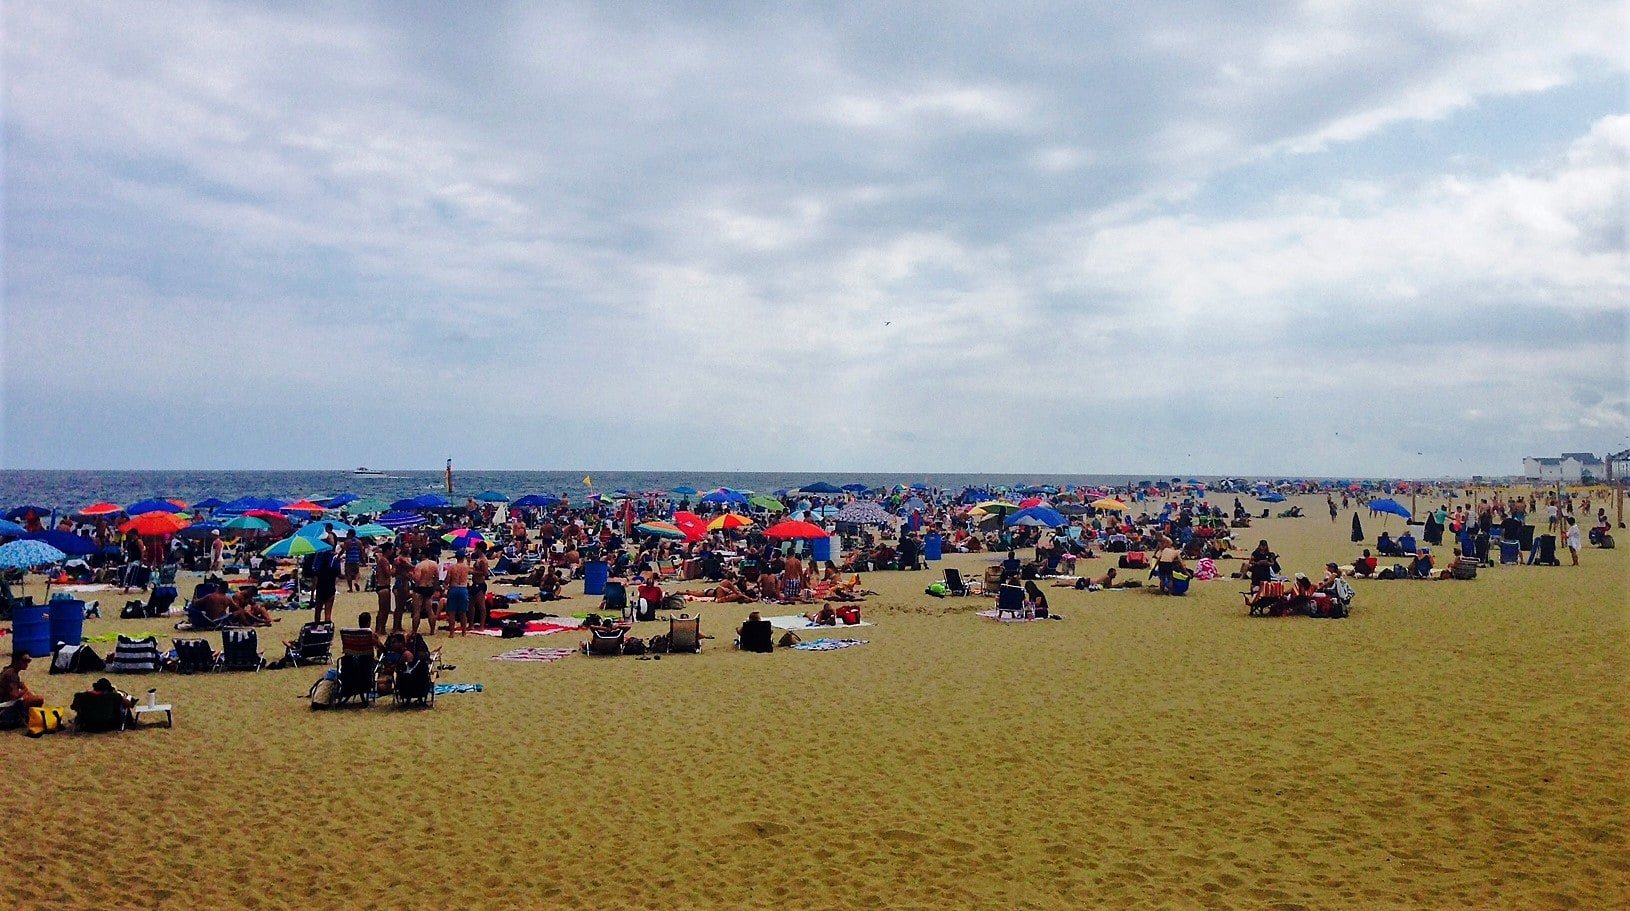 On a nice summer day, everyone wants to be at the beach! -